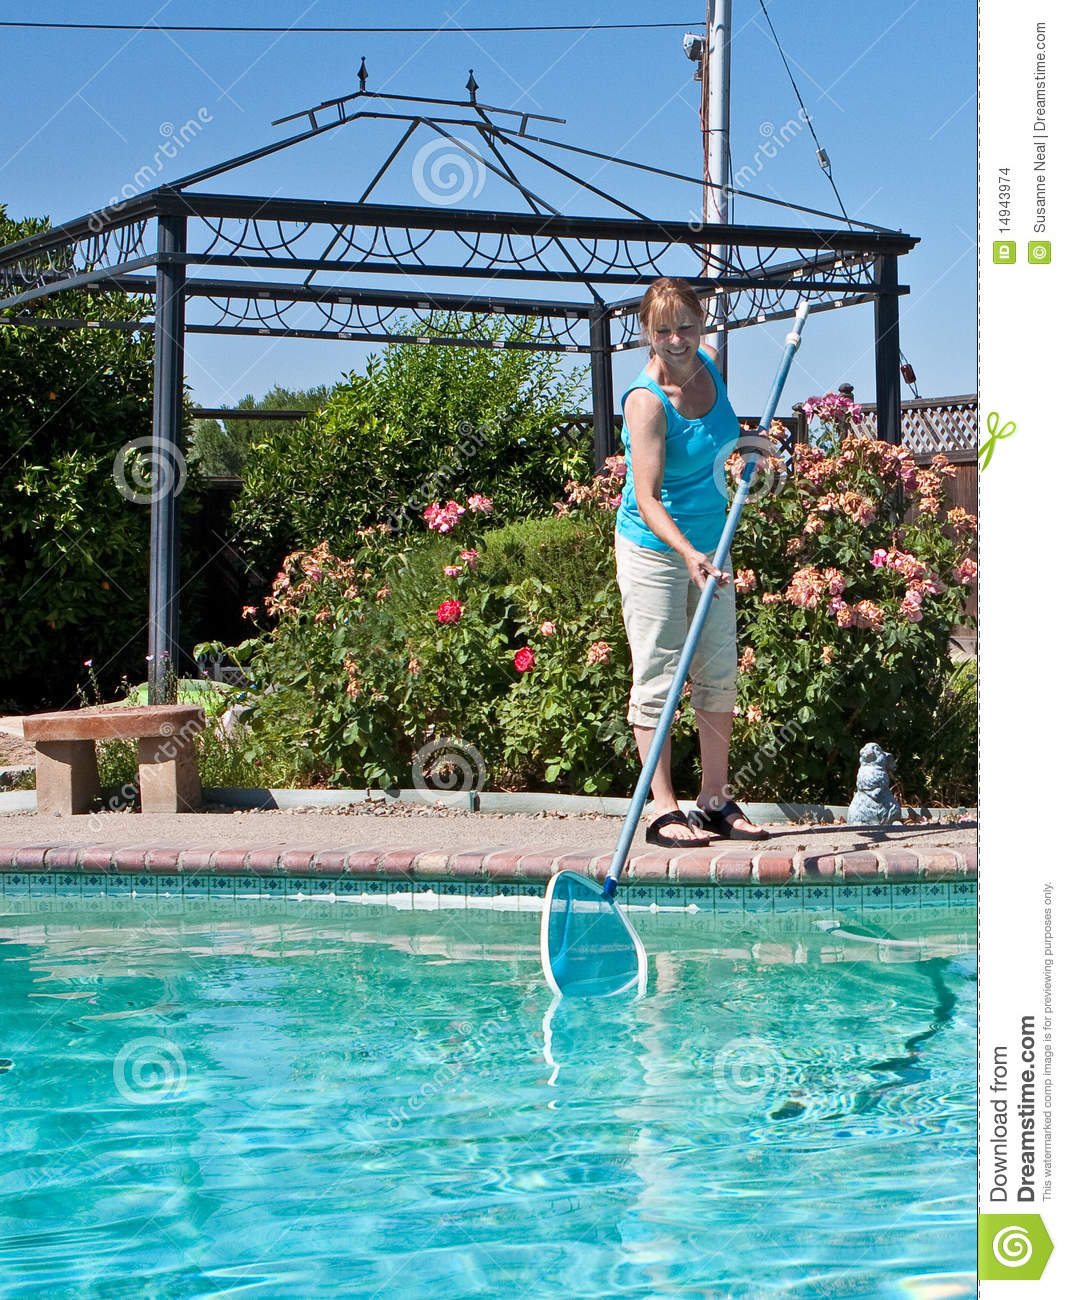 Cleaning Swimming Pools : Woman cleaning swimming pool stock images image